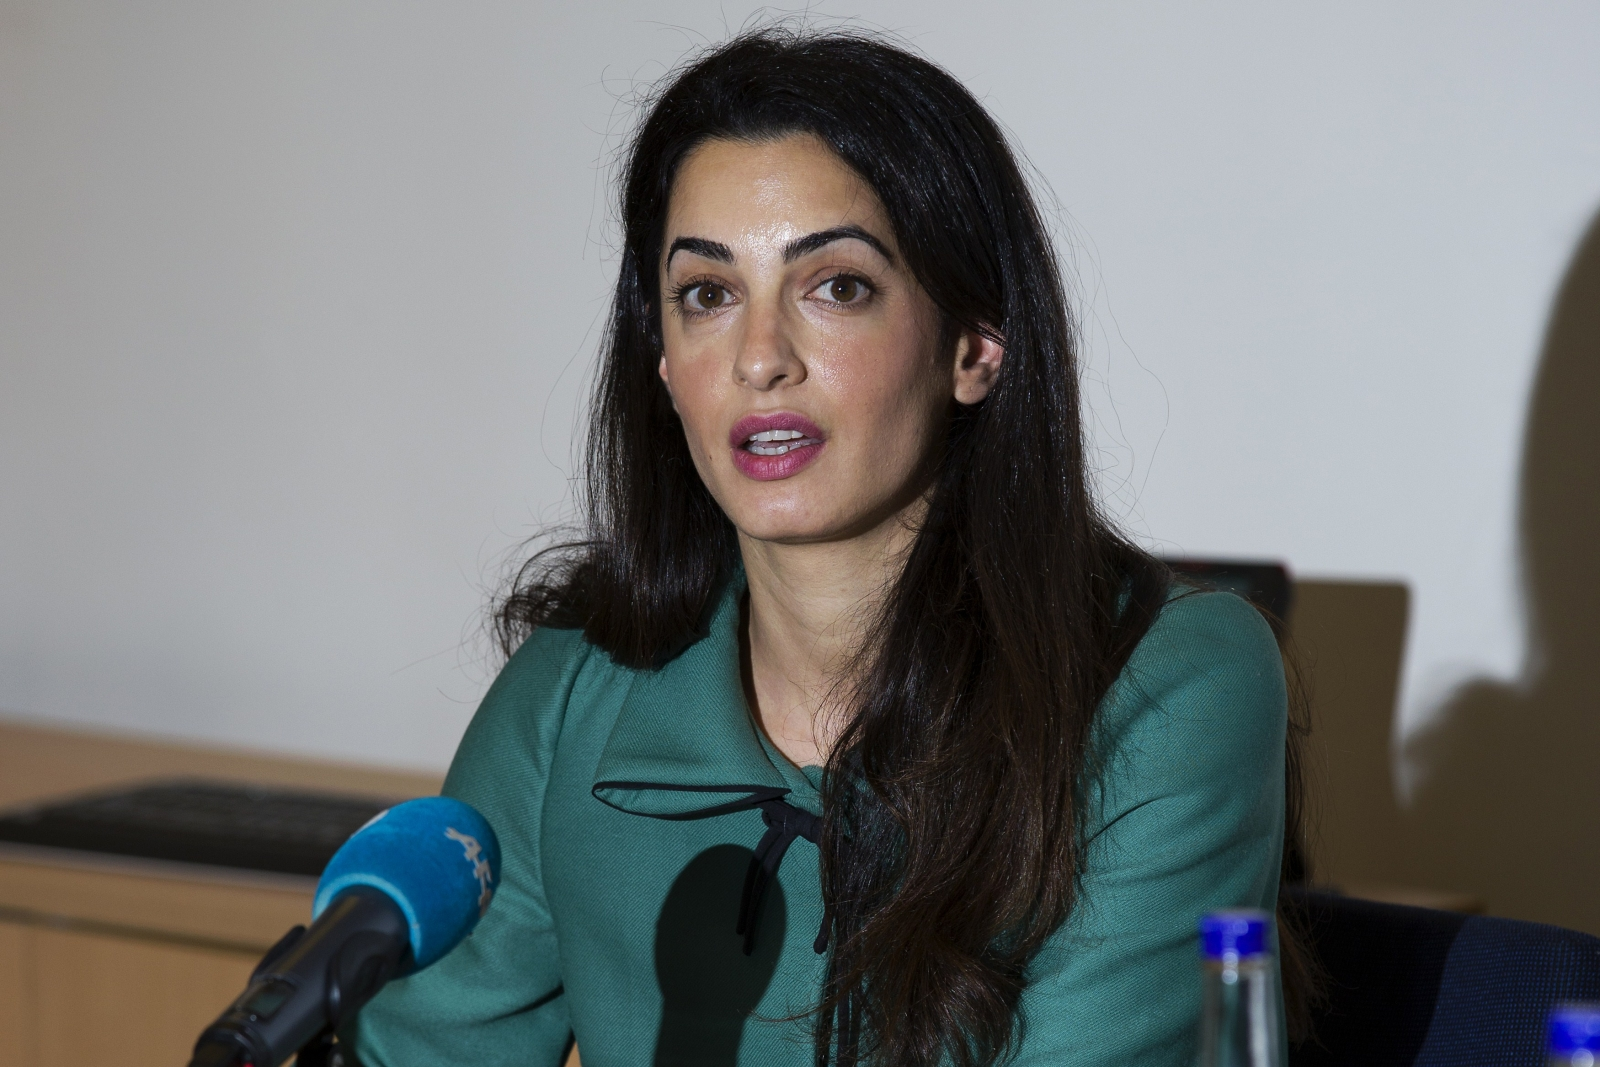 British-Lebanese human rights lawyer and George Clooney's fiancée Amal Alamuddin